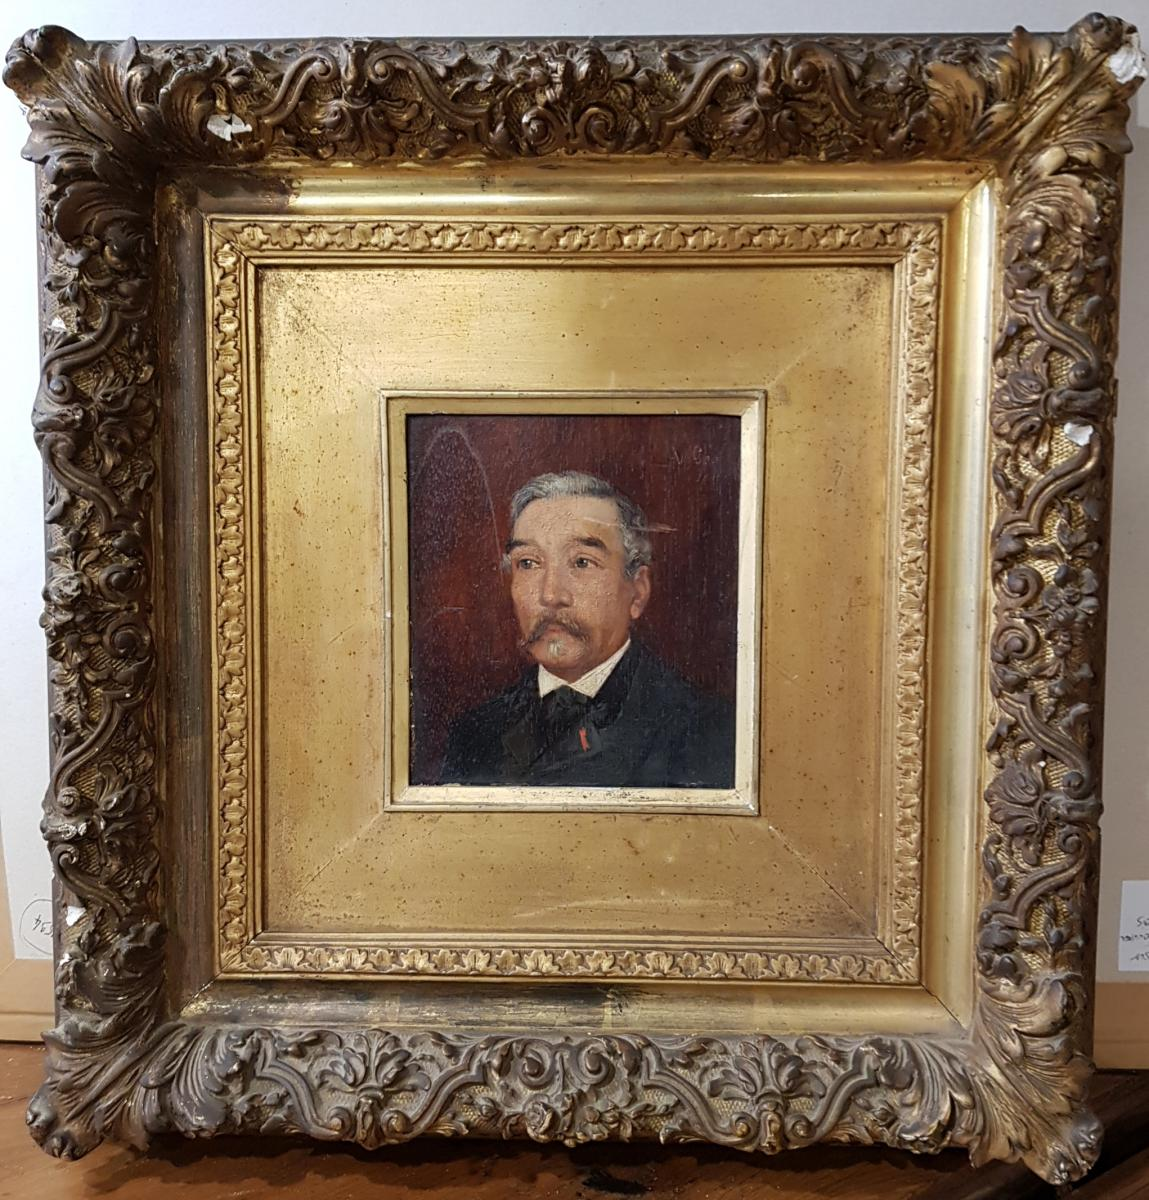 Table Portrait Of Mayor Signed V.geo And Dated 1891 In Its Golden Frame